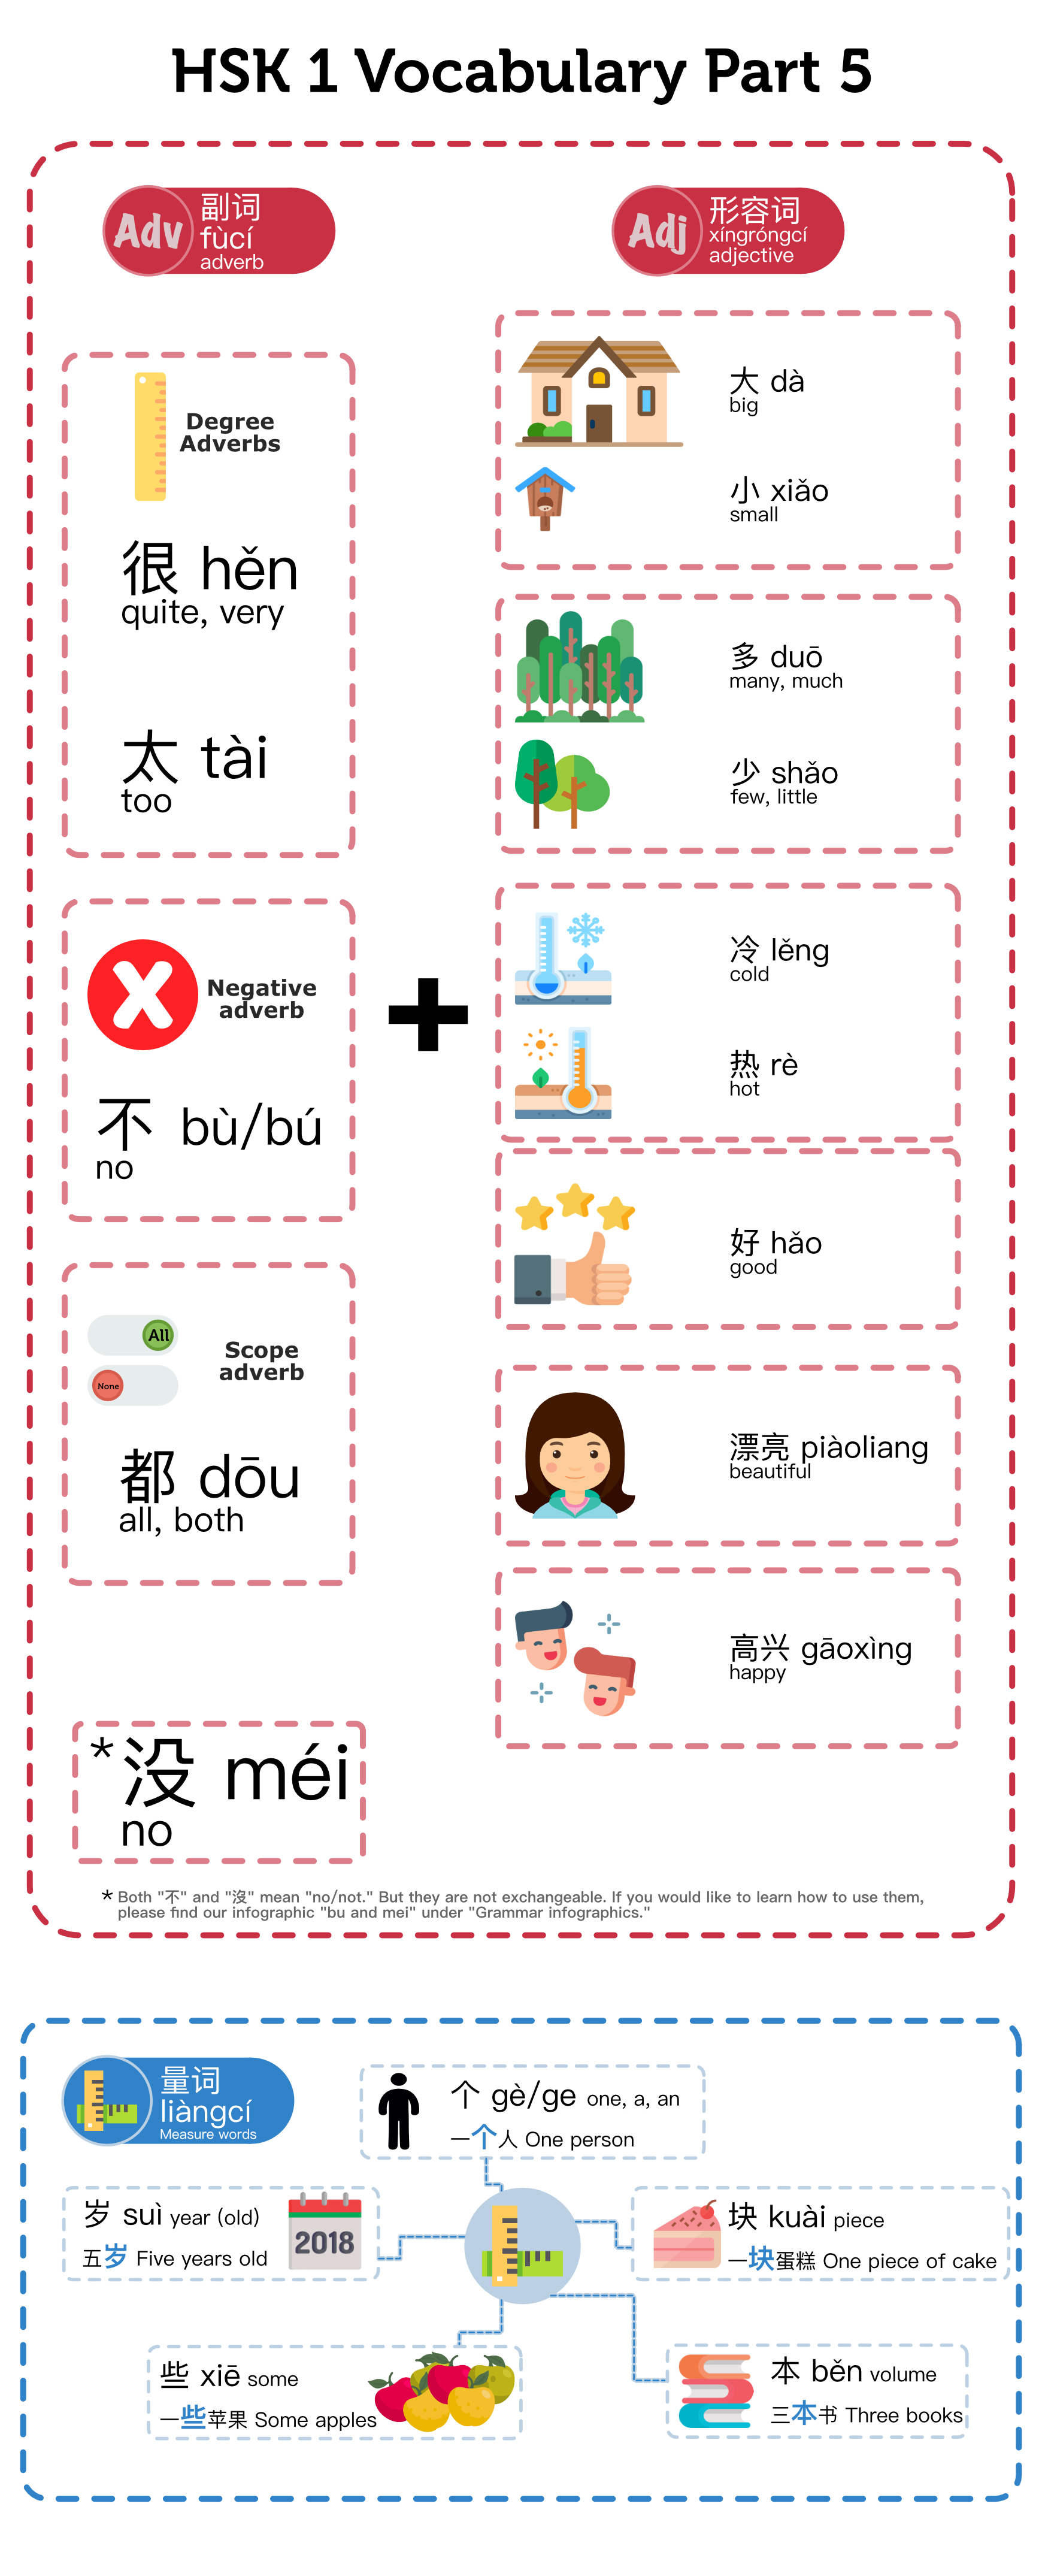 HSK 1 Vocabulary Part 5 Infographic